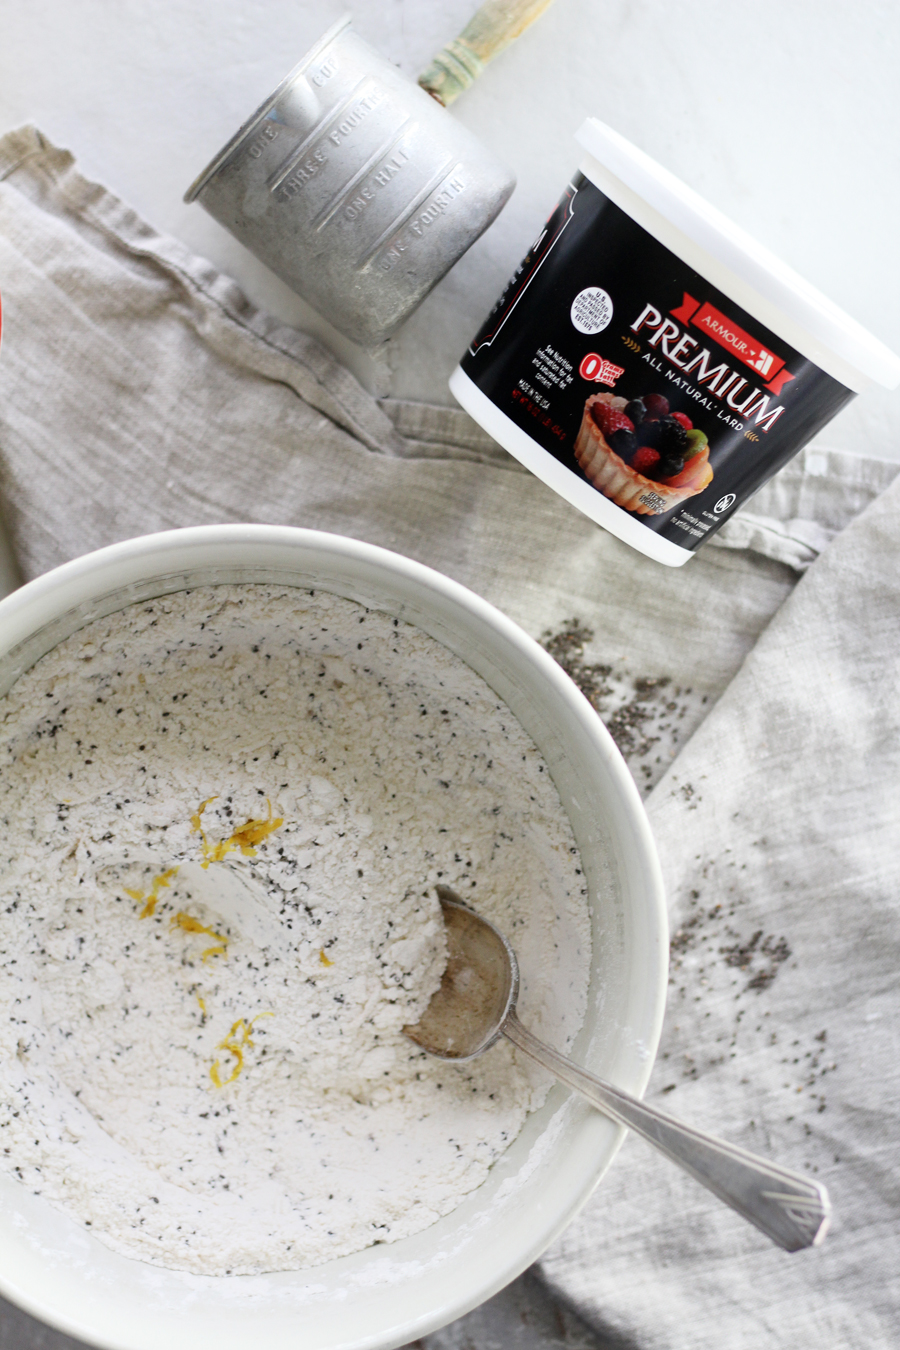 A white bowl of flour and muffin ingredients next to a container of lard and a measuring cup